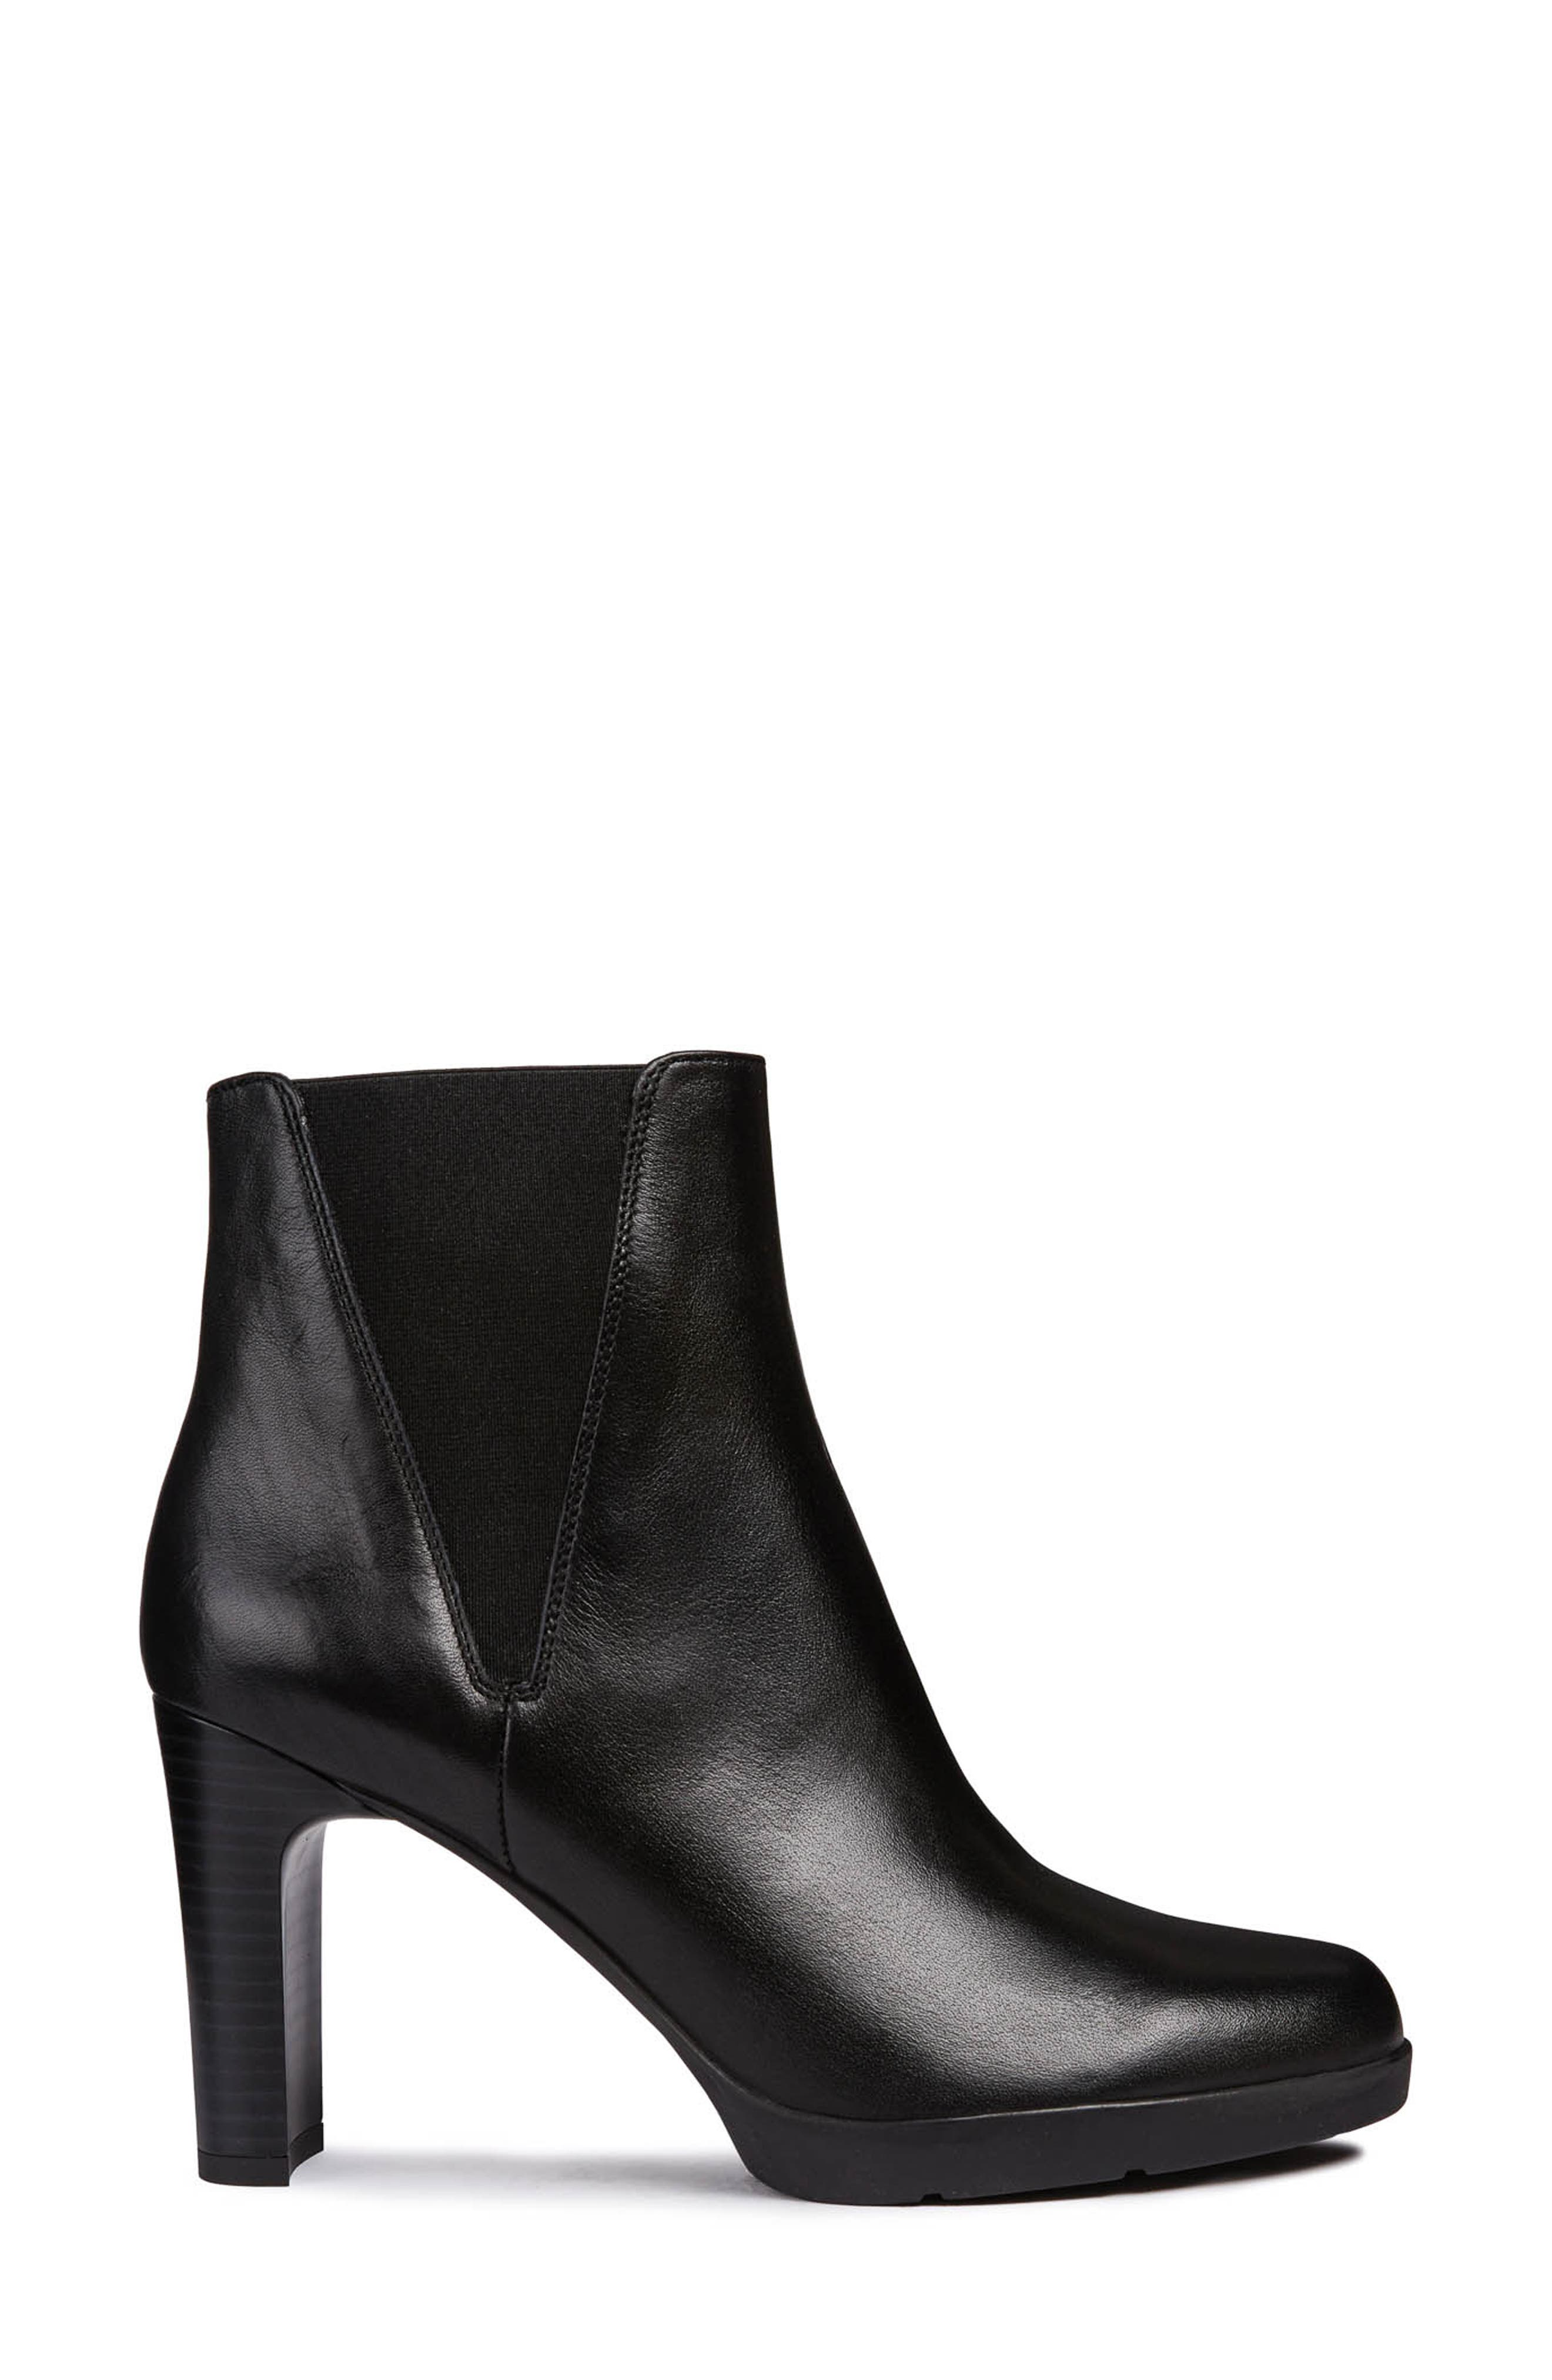 Annya Bootie,                             Alternate thumbnail 3, color,                             BLACK LEATHER